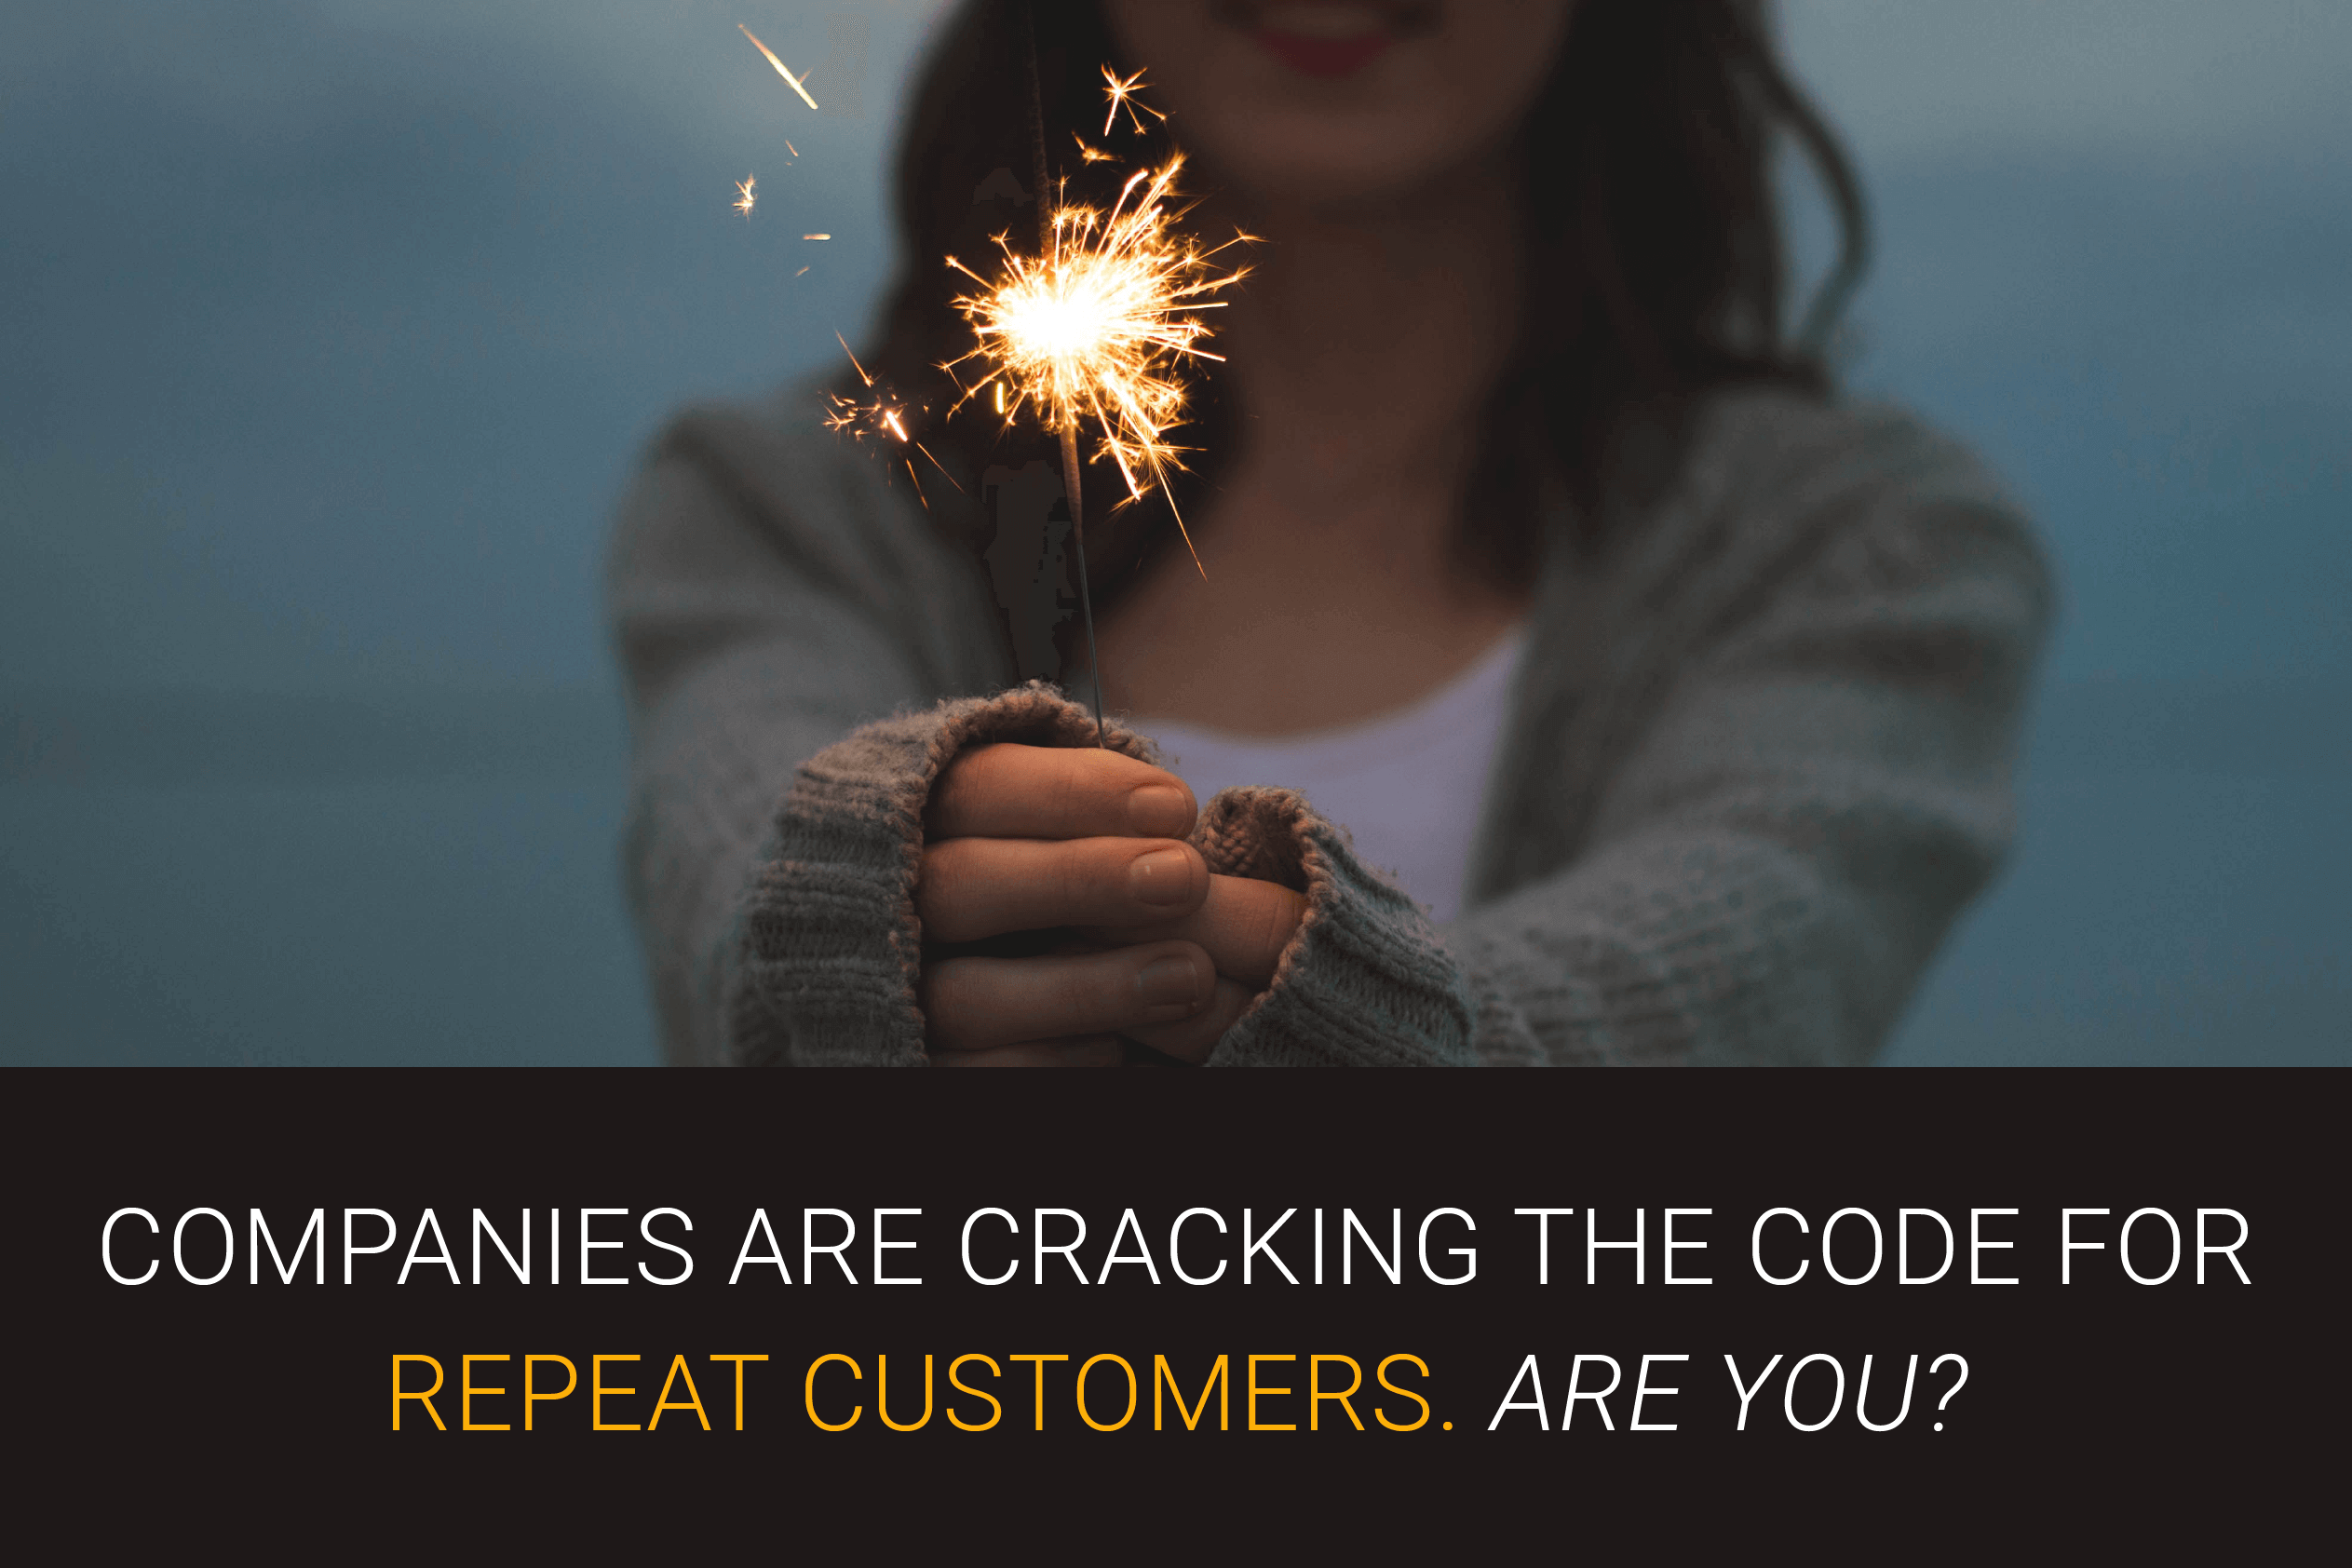 Companies are cracking the code for repeat customers. Are you?